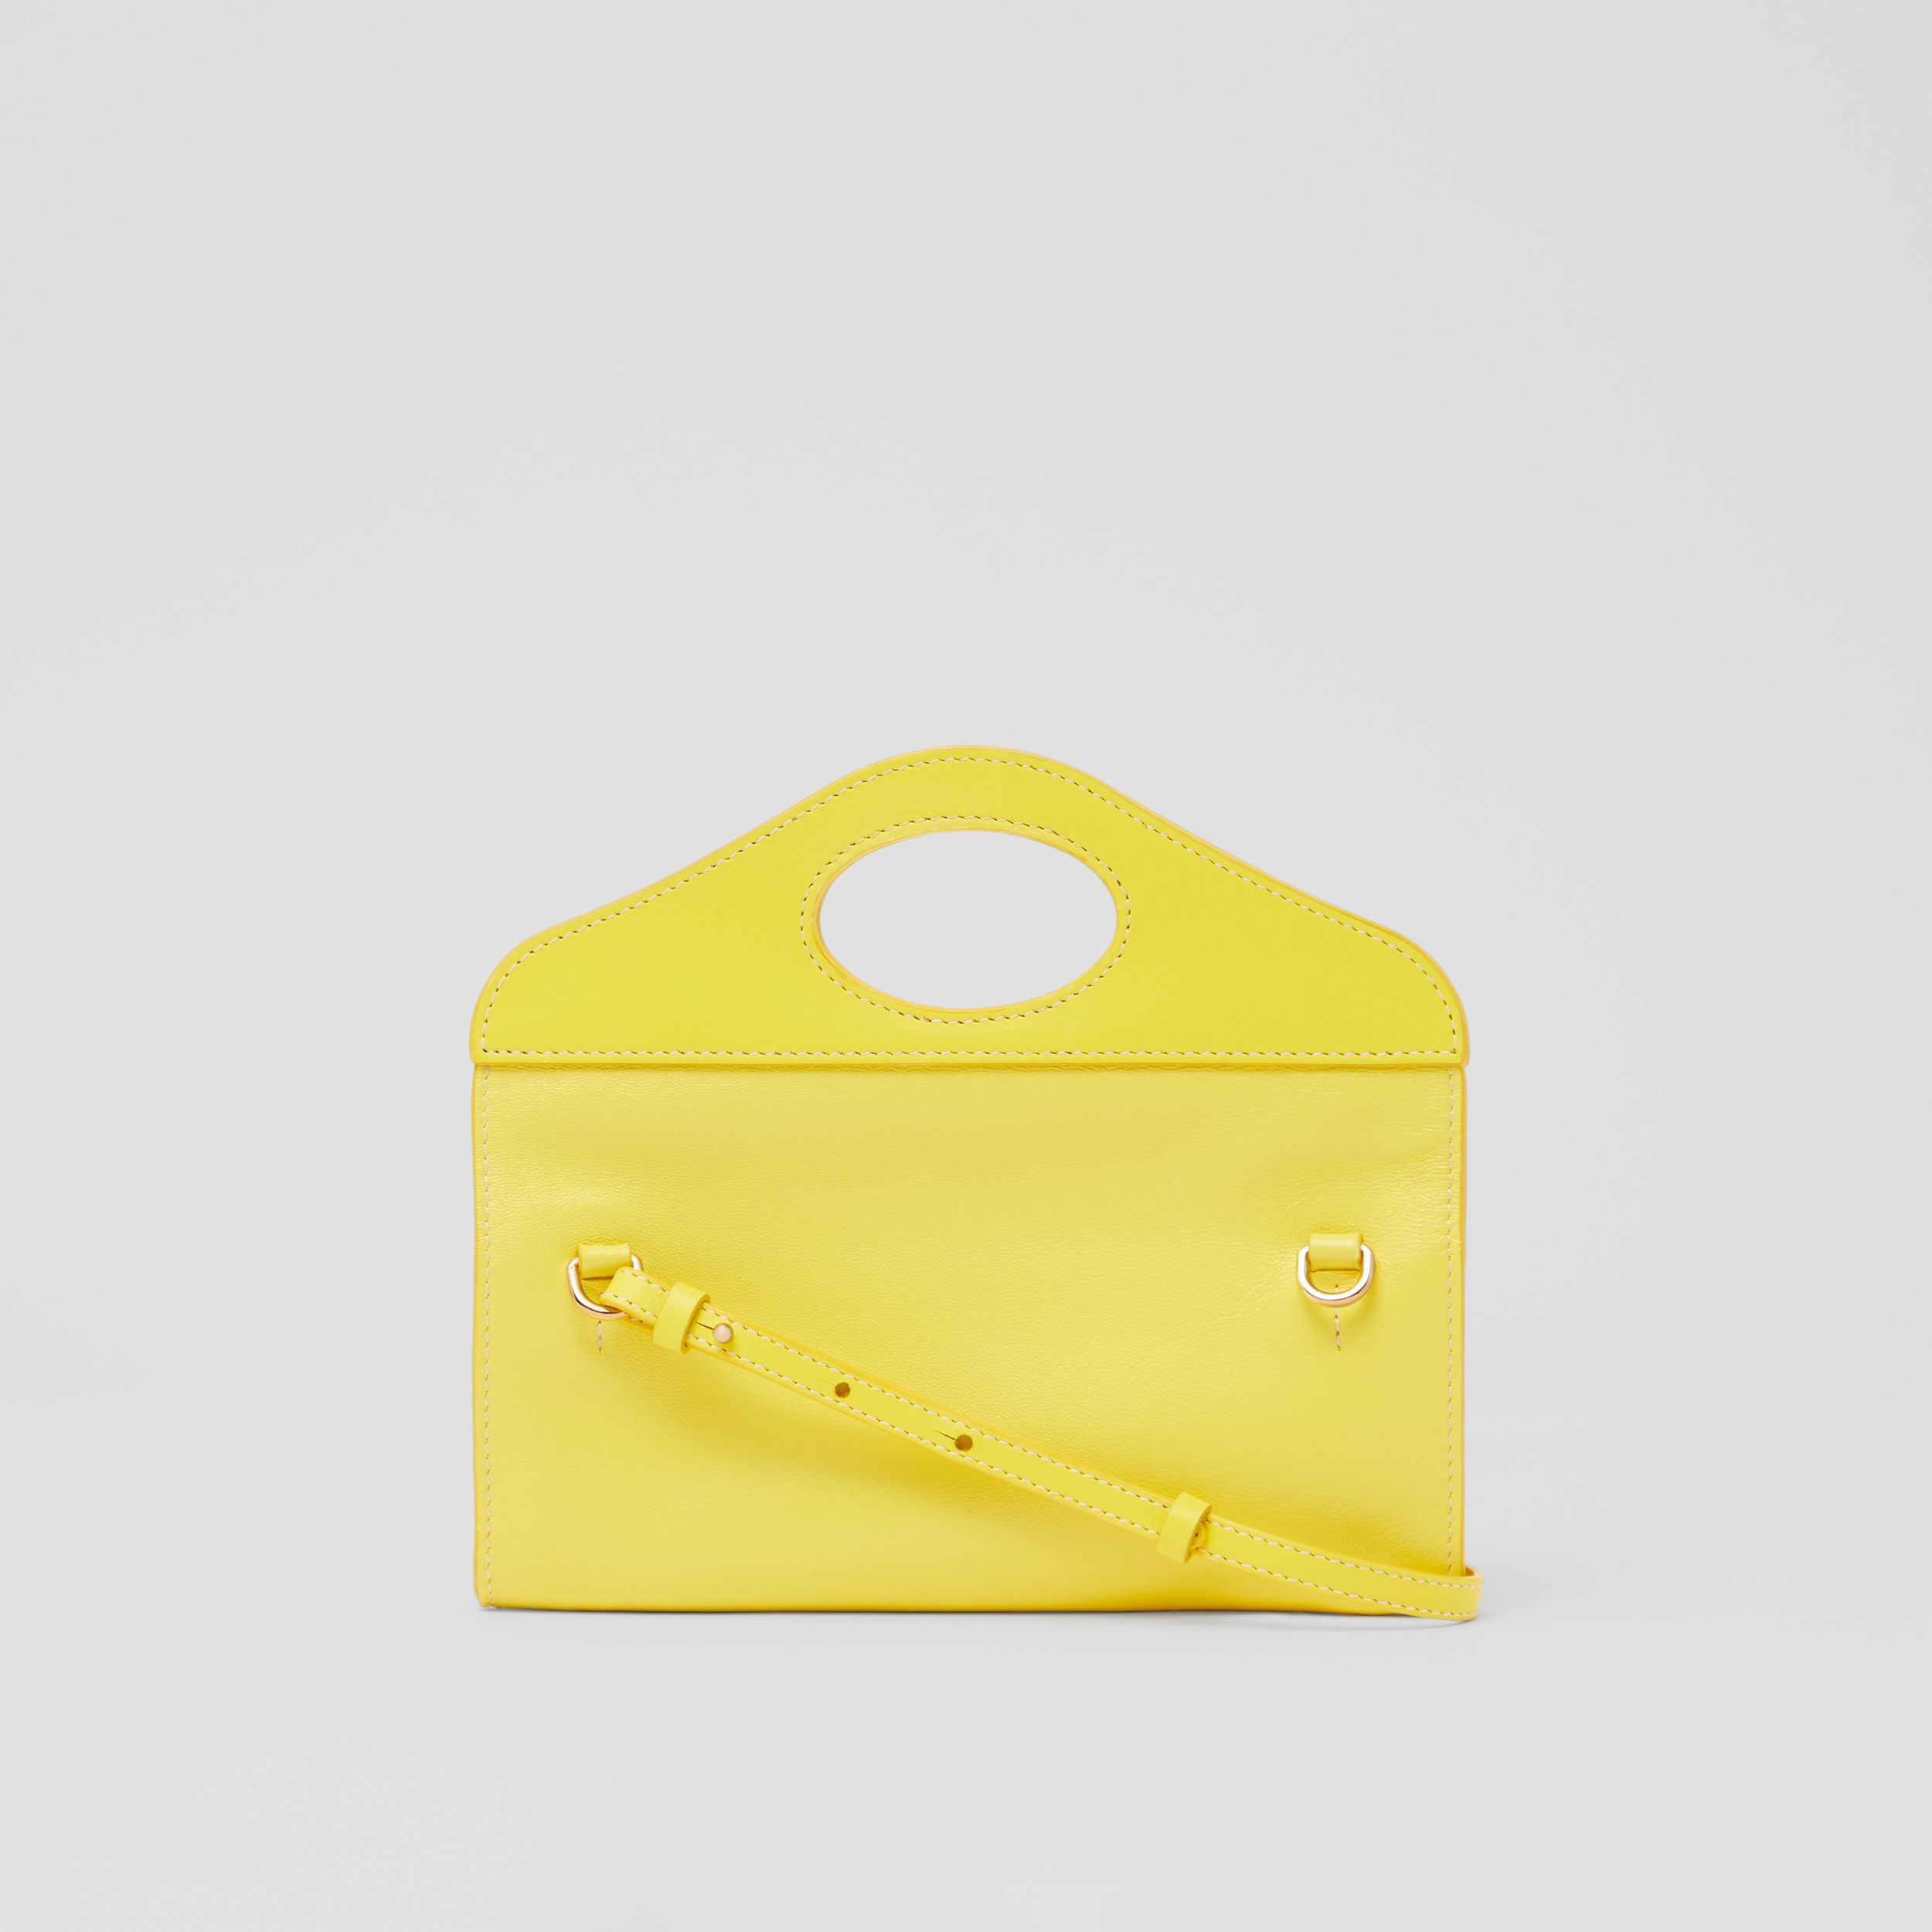 Mini Topstitched Lambskin Pocket Clutch in Marigold Yellow - Women | Burberry - 4